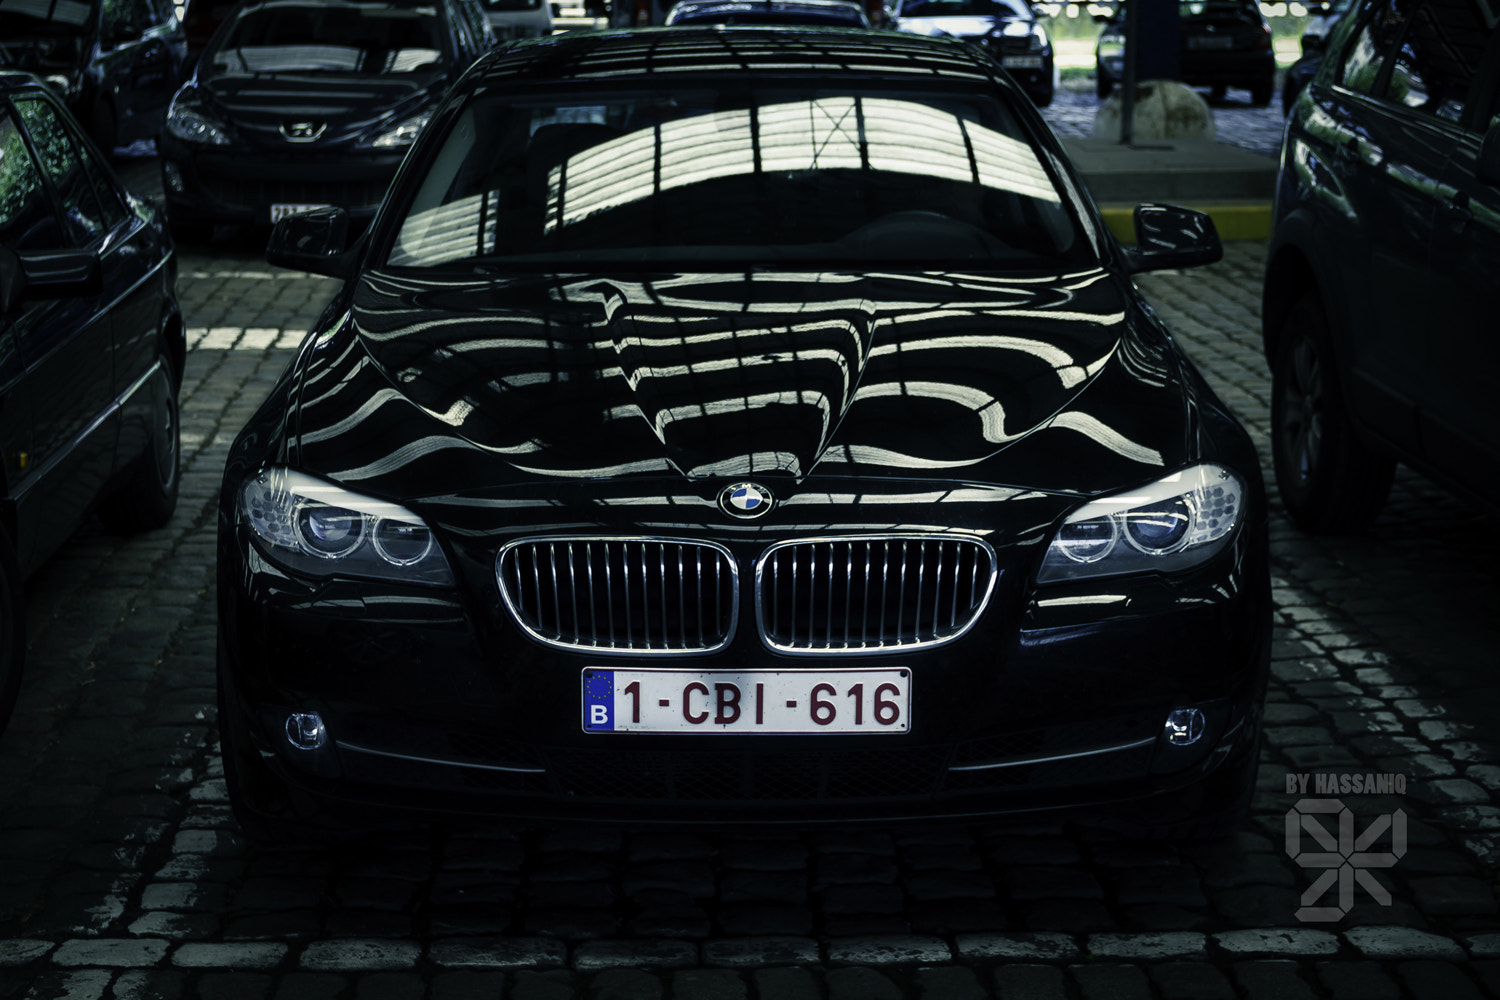 Photograph BMW by hassaniq :-) on 500px